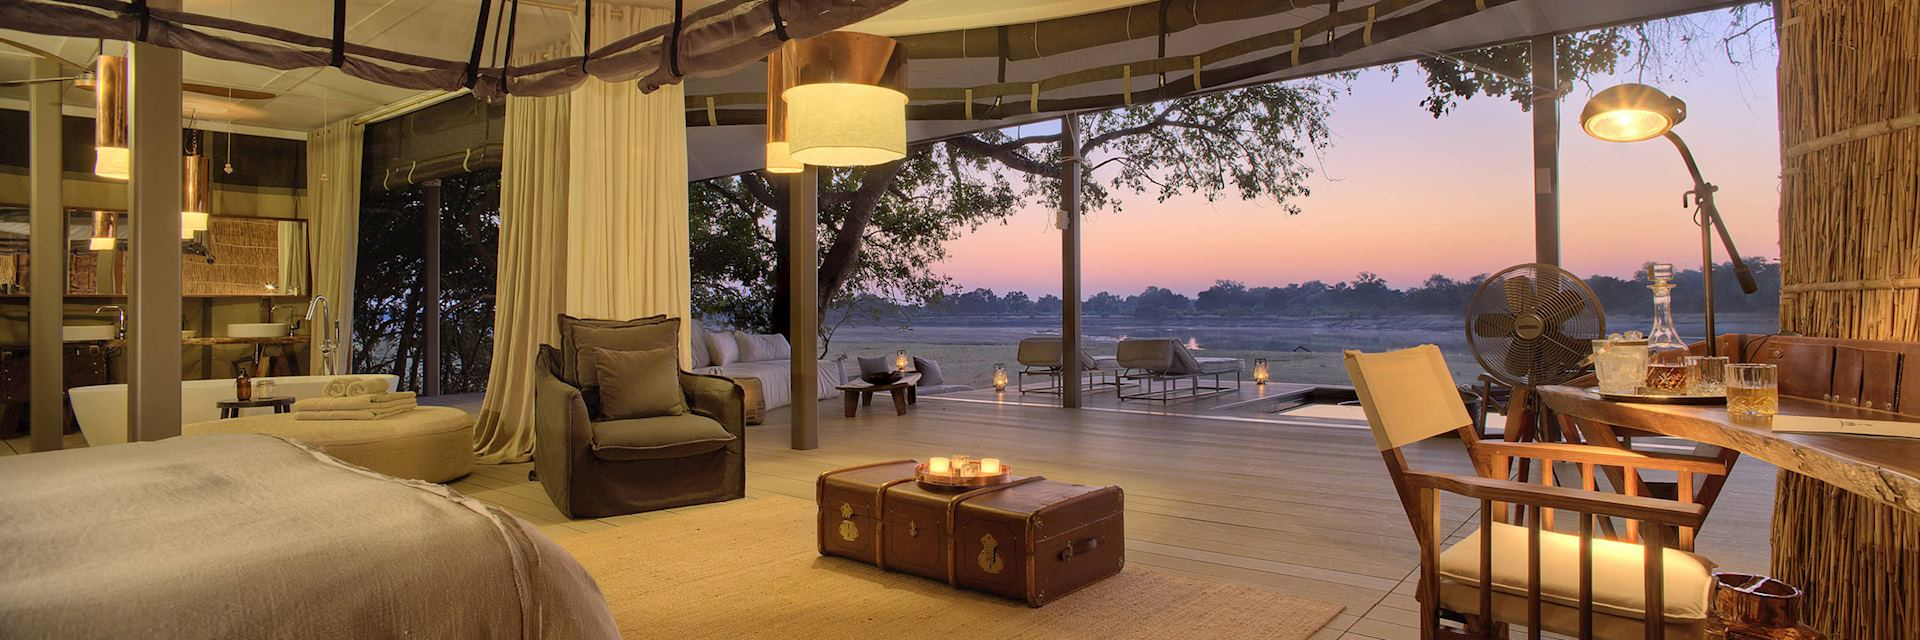 View from Chinzombo Camp, South Luangwa National Park